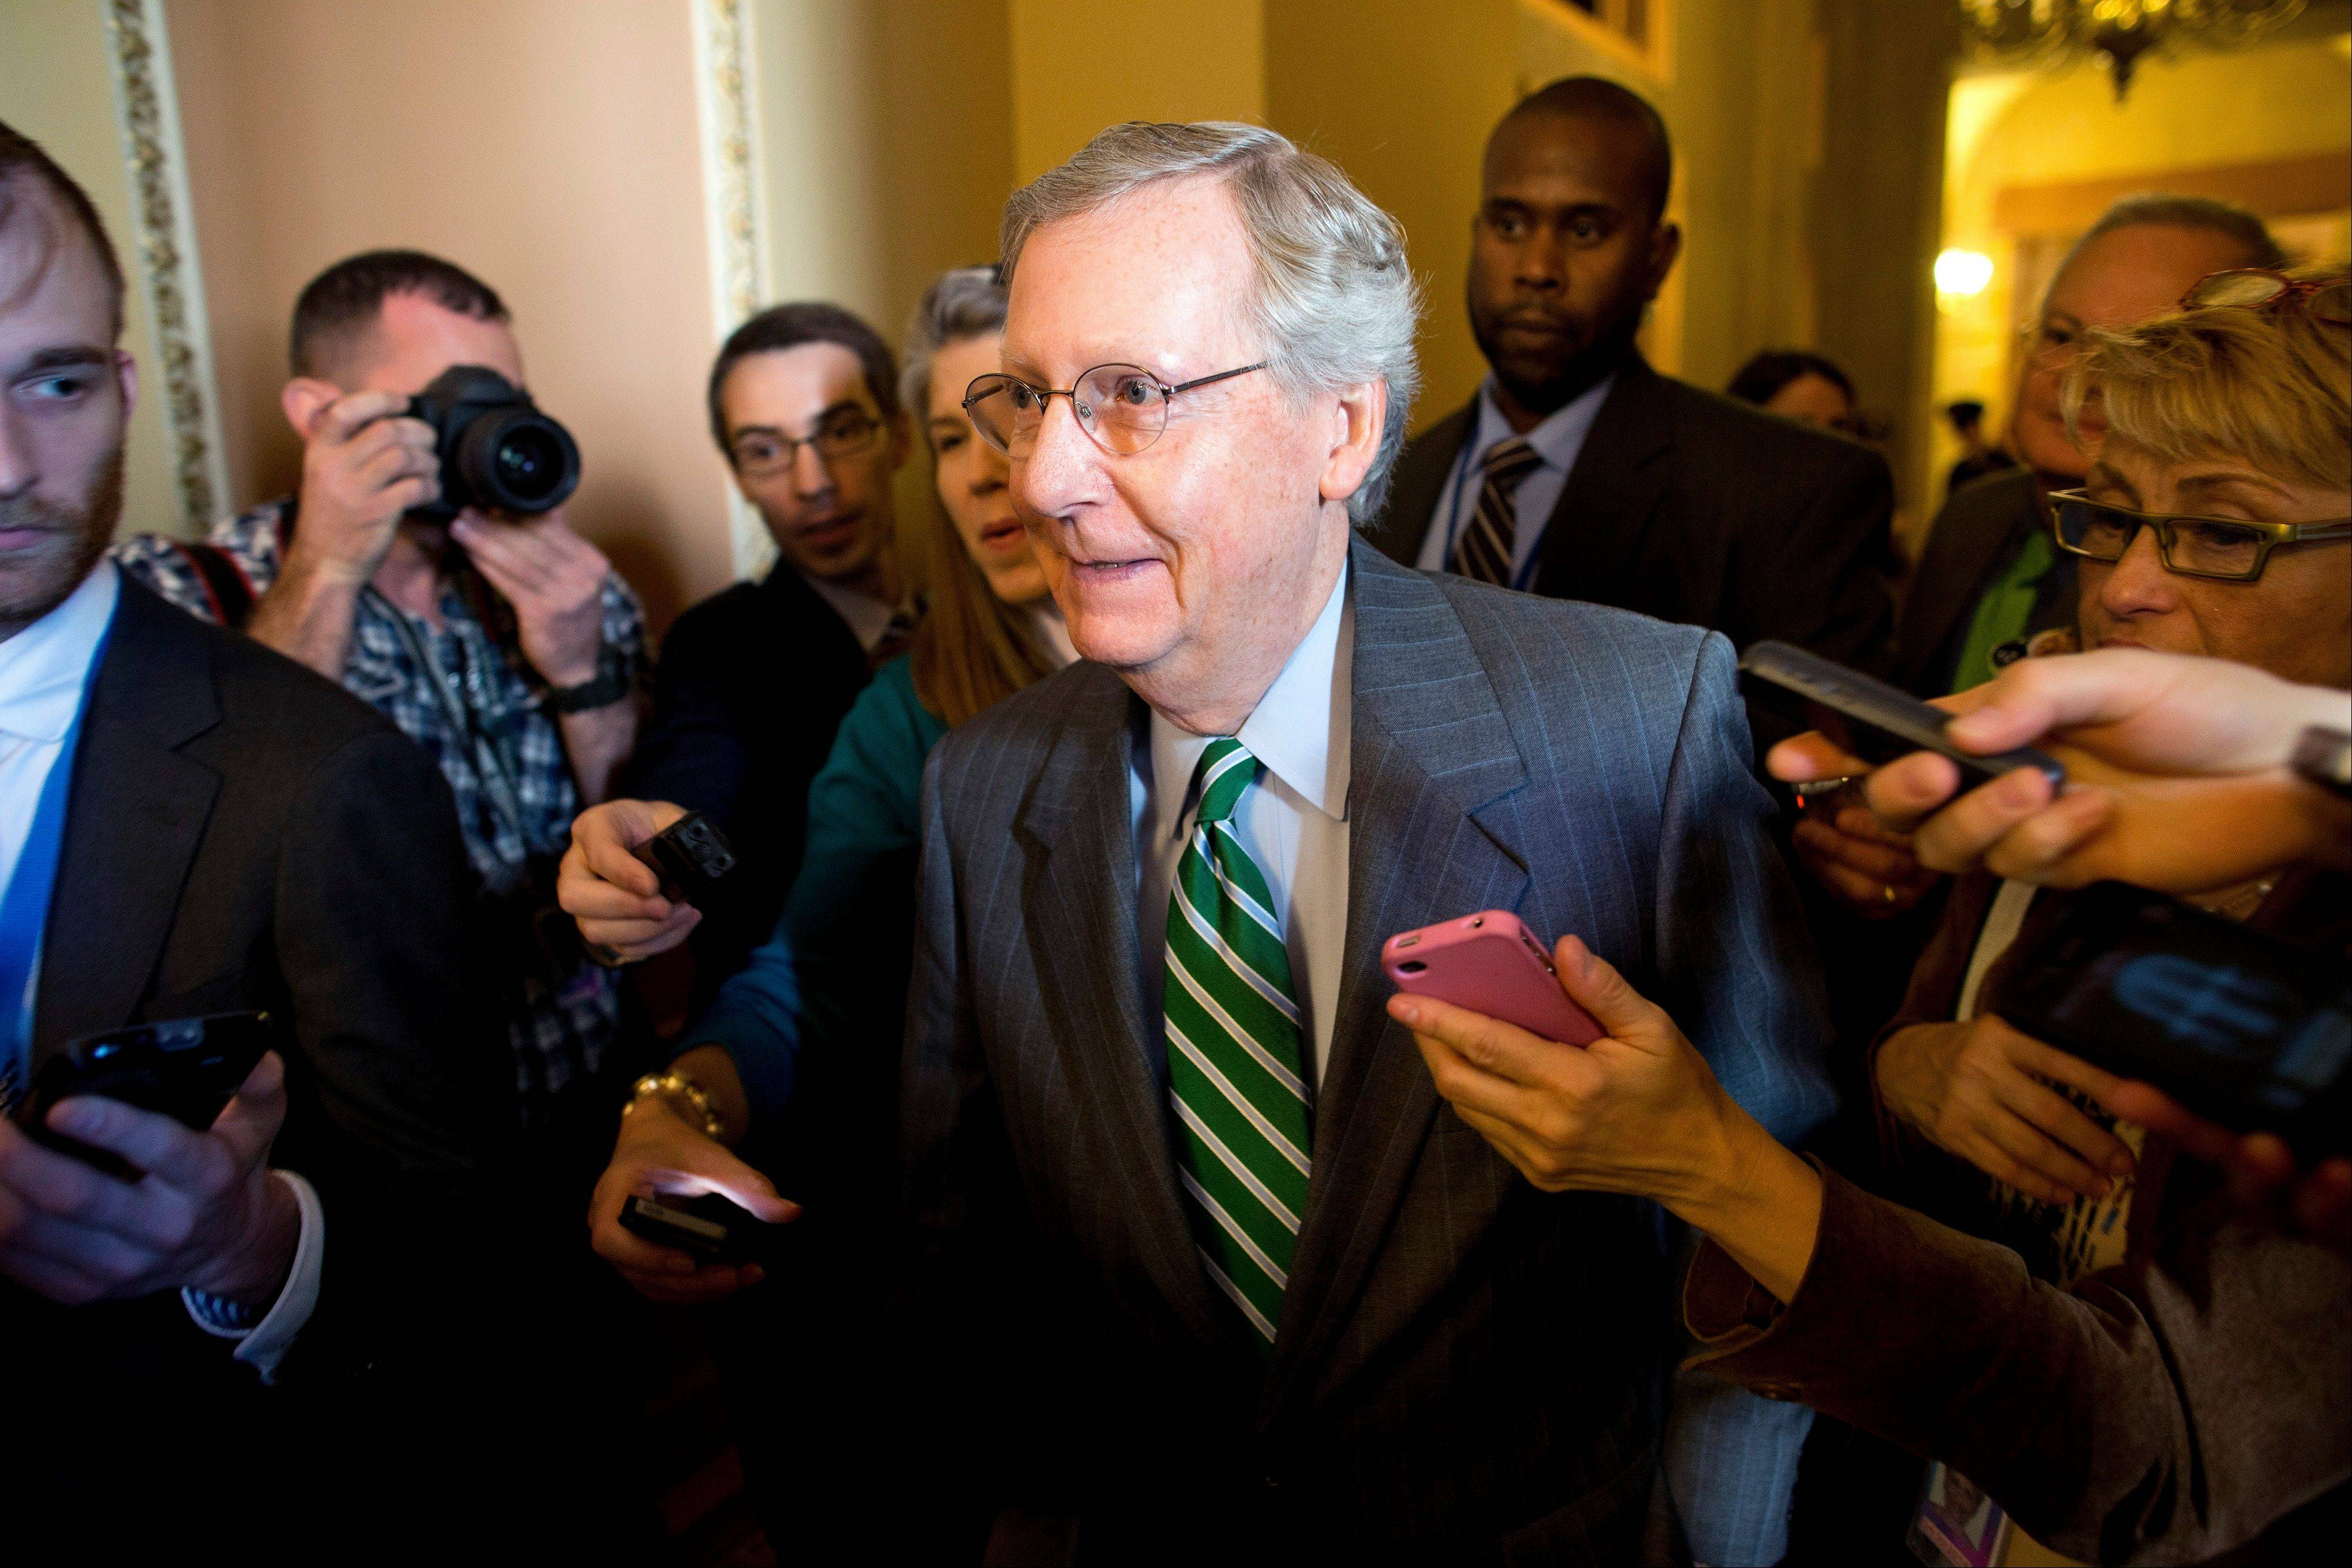 Senate Minority Leader Sen. Mitch McConnell, a Kansas Republican, is surrounded by reporters Monday as he walks to the Senate floor after meeting with Senate Majority Leader Sen. Harry Reid in Washington.